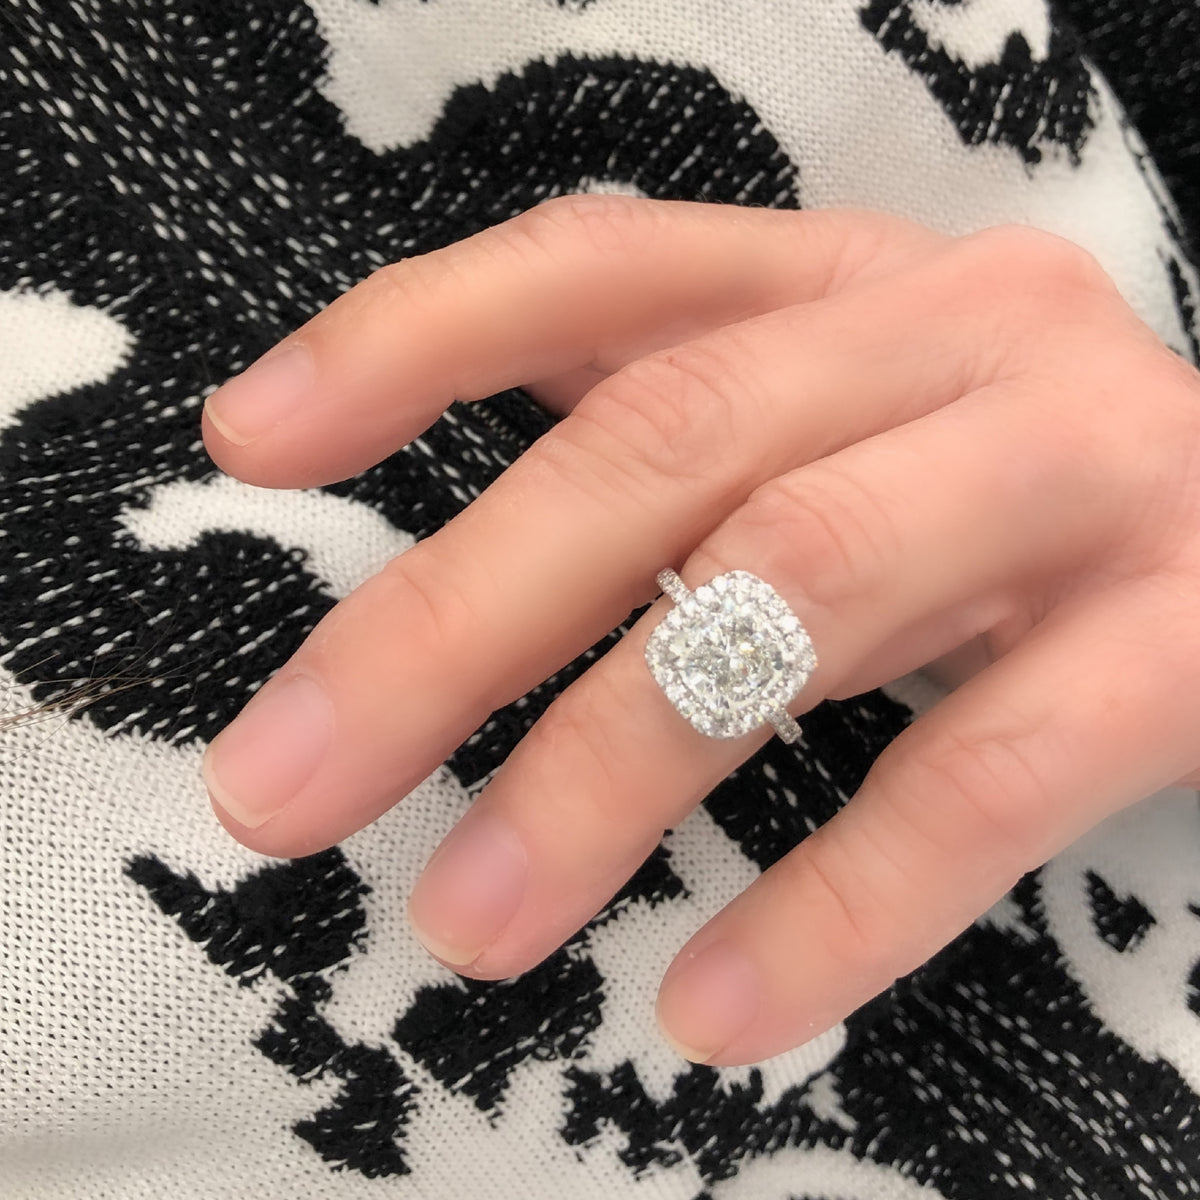 GIA Certified 3.07 Cushion Cut Solitaire Diamond Halo Ring in Platinum model view